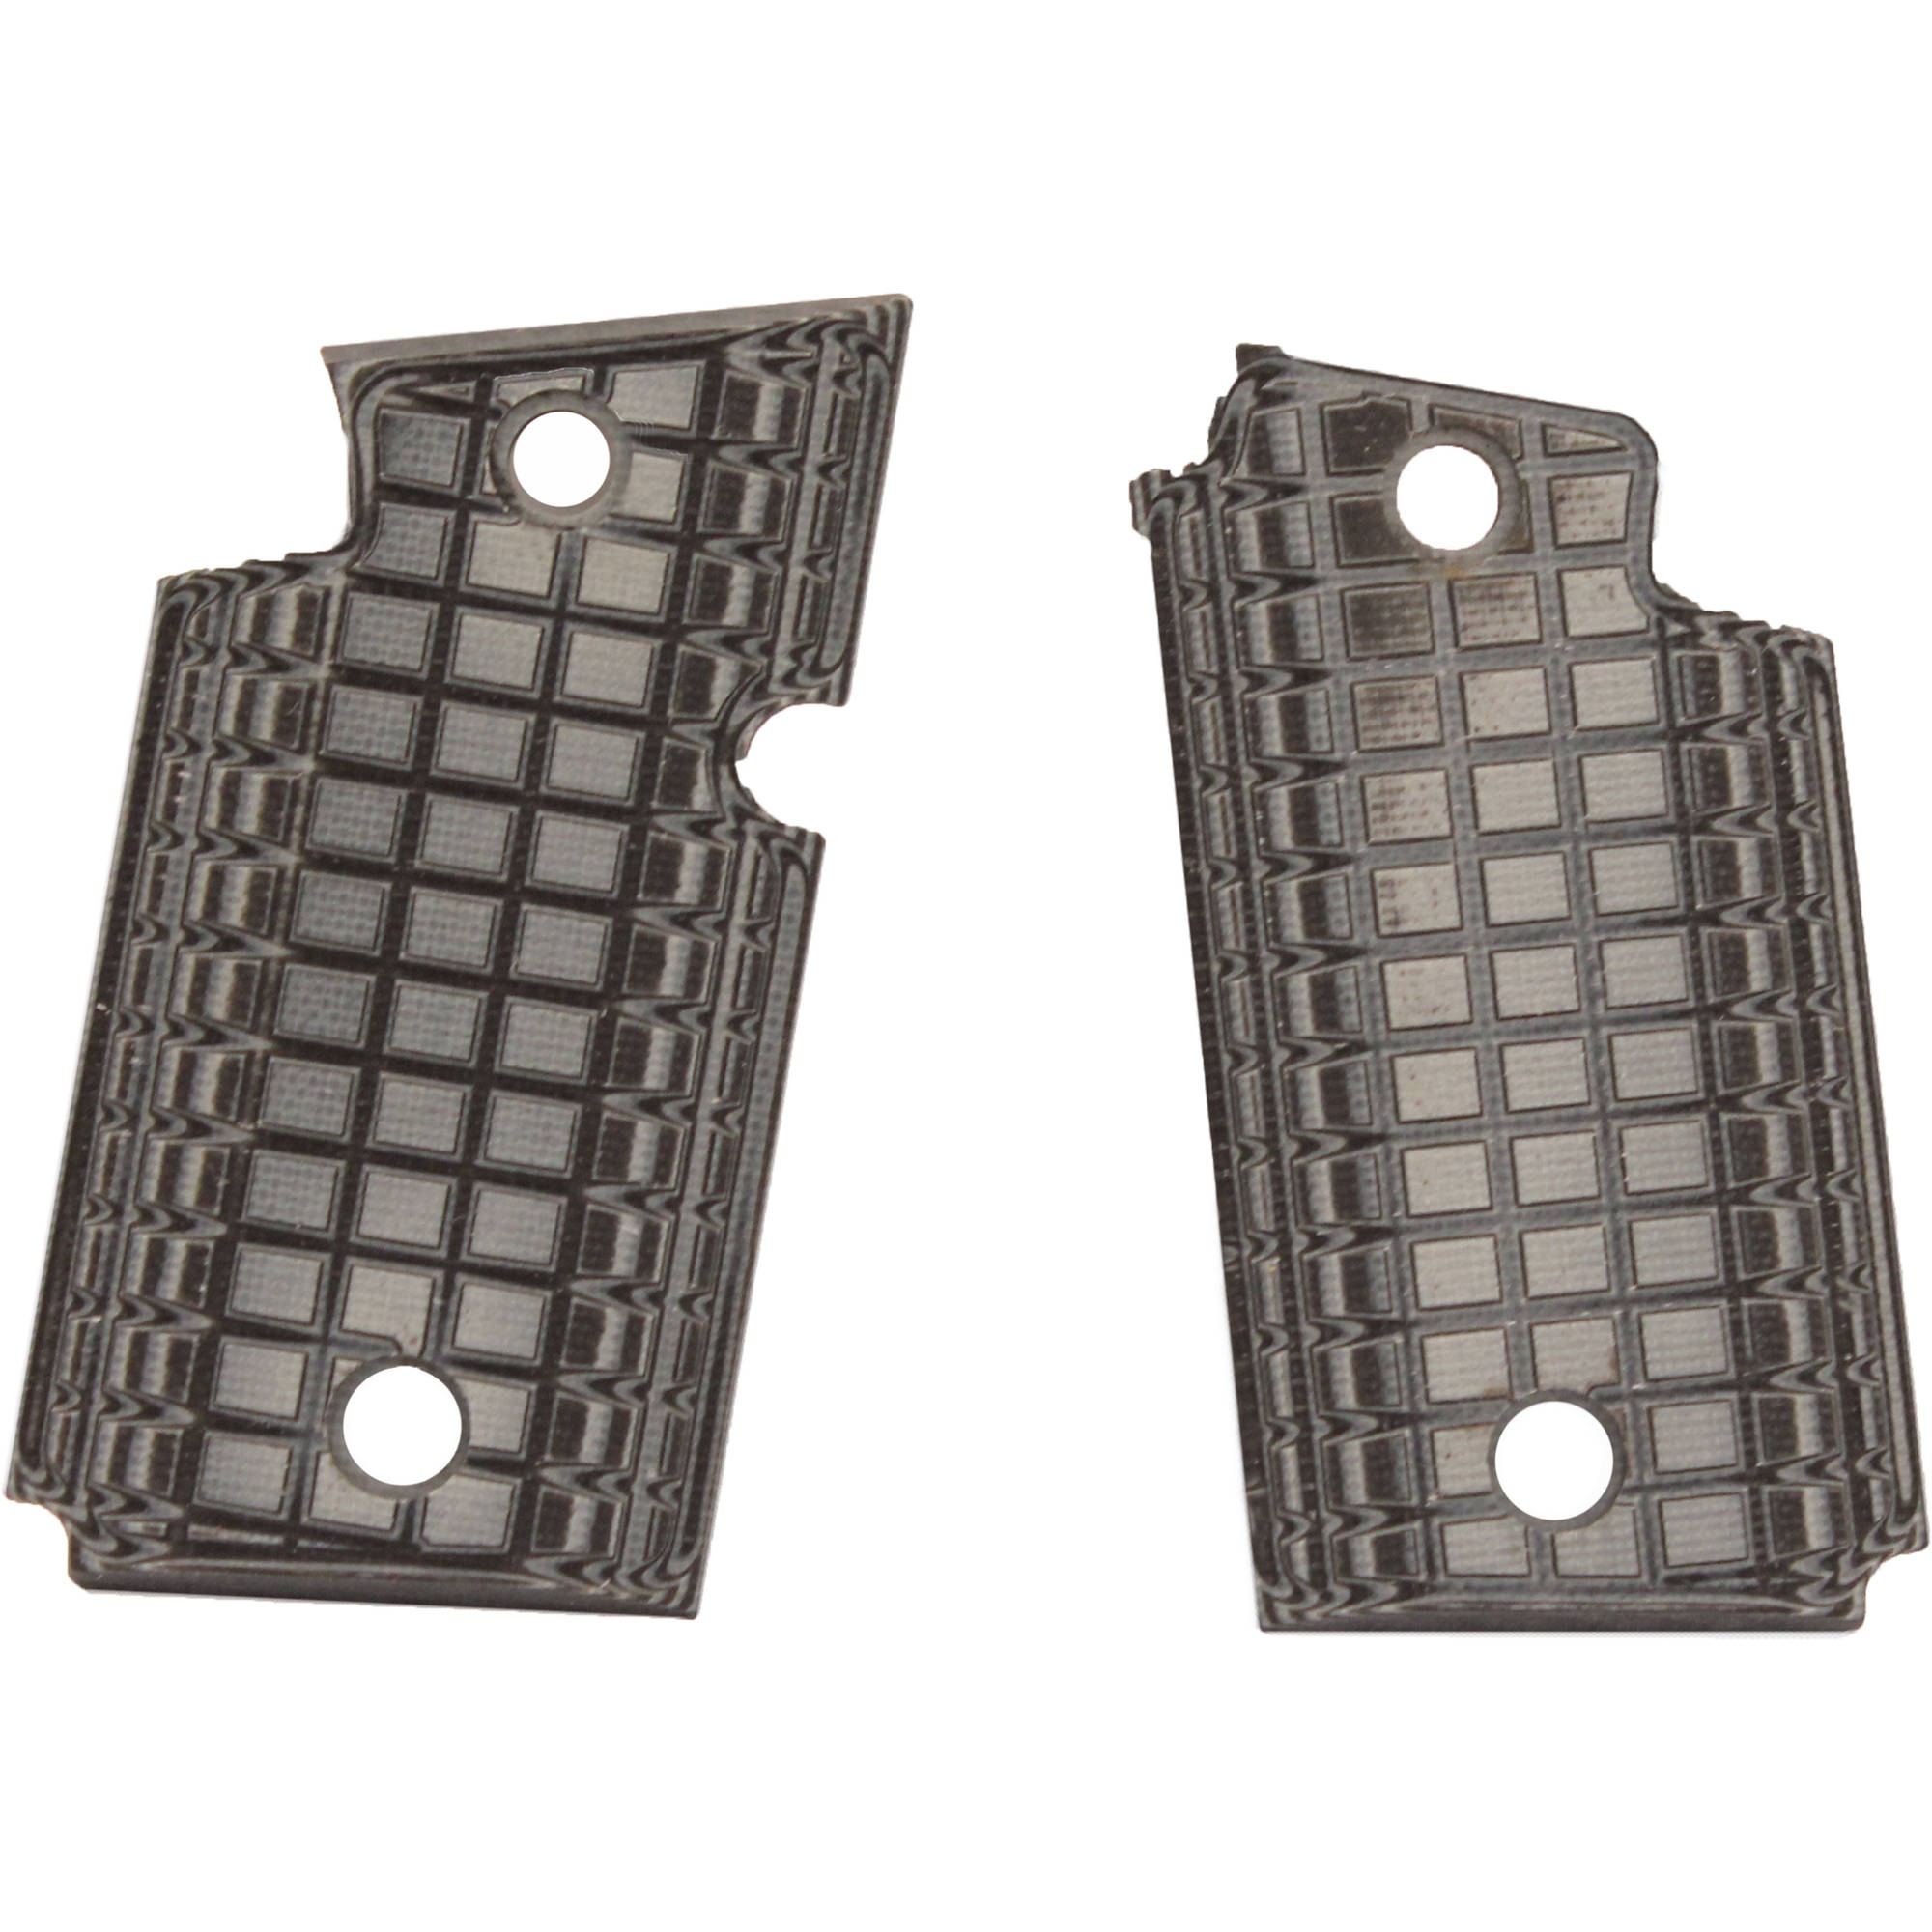 Pachmayr P938 Recoil Pad Coarse, Gray/Black